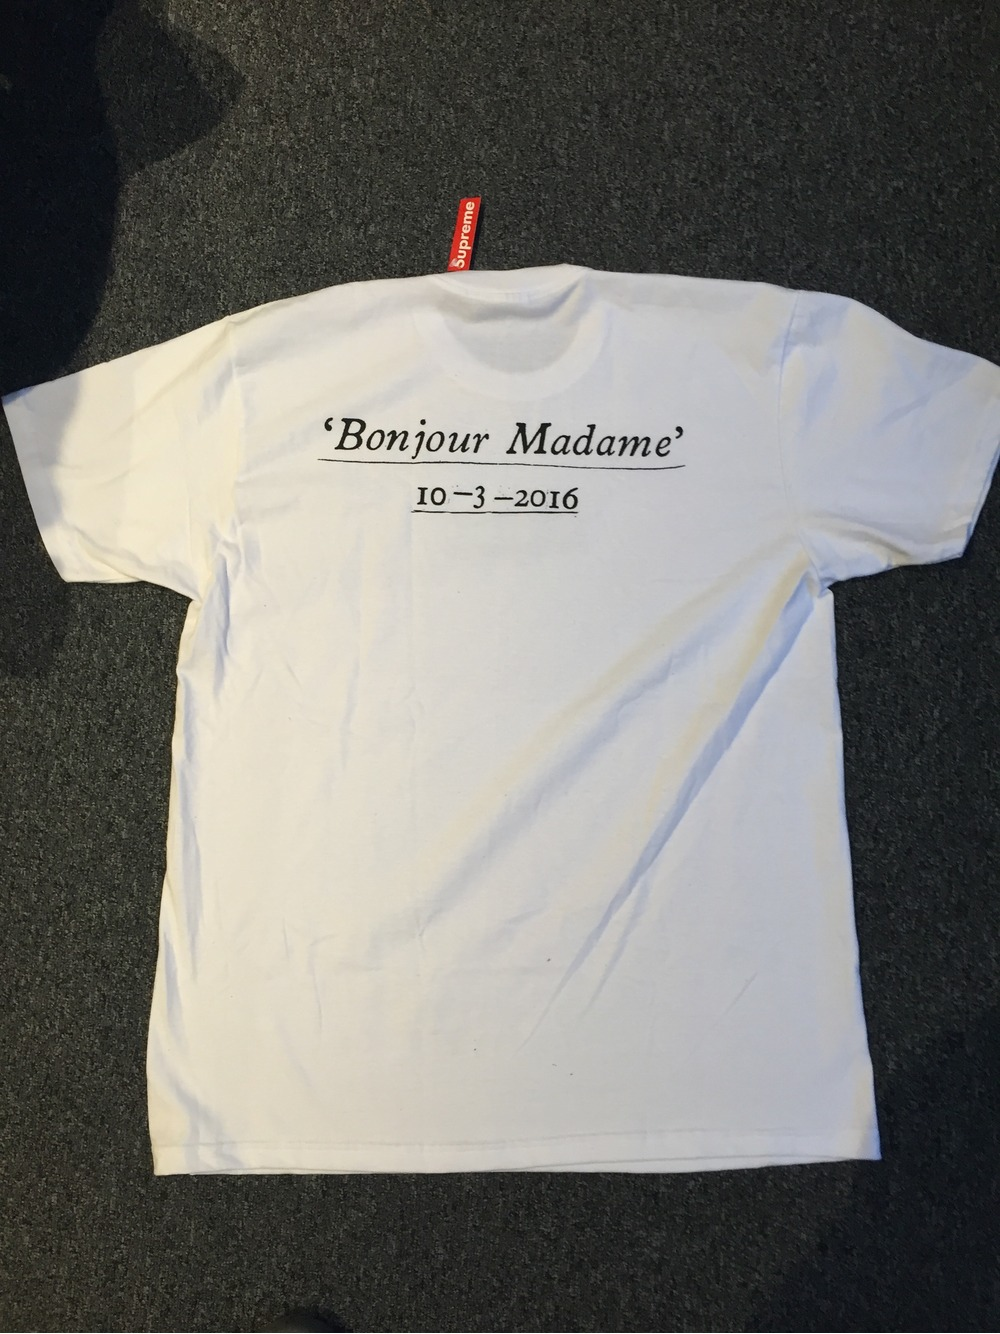 Replica Supreme Clothing Aliexpress  Best Review